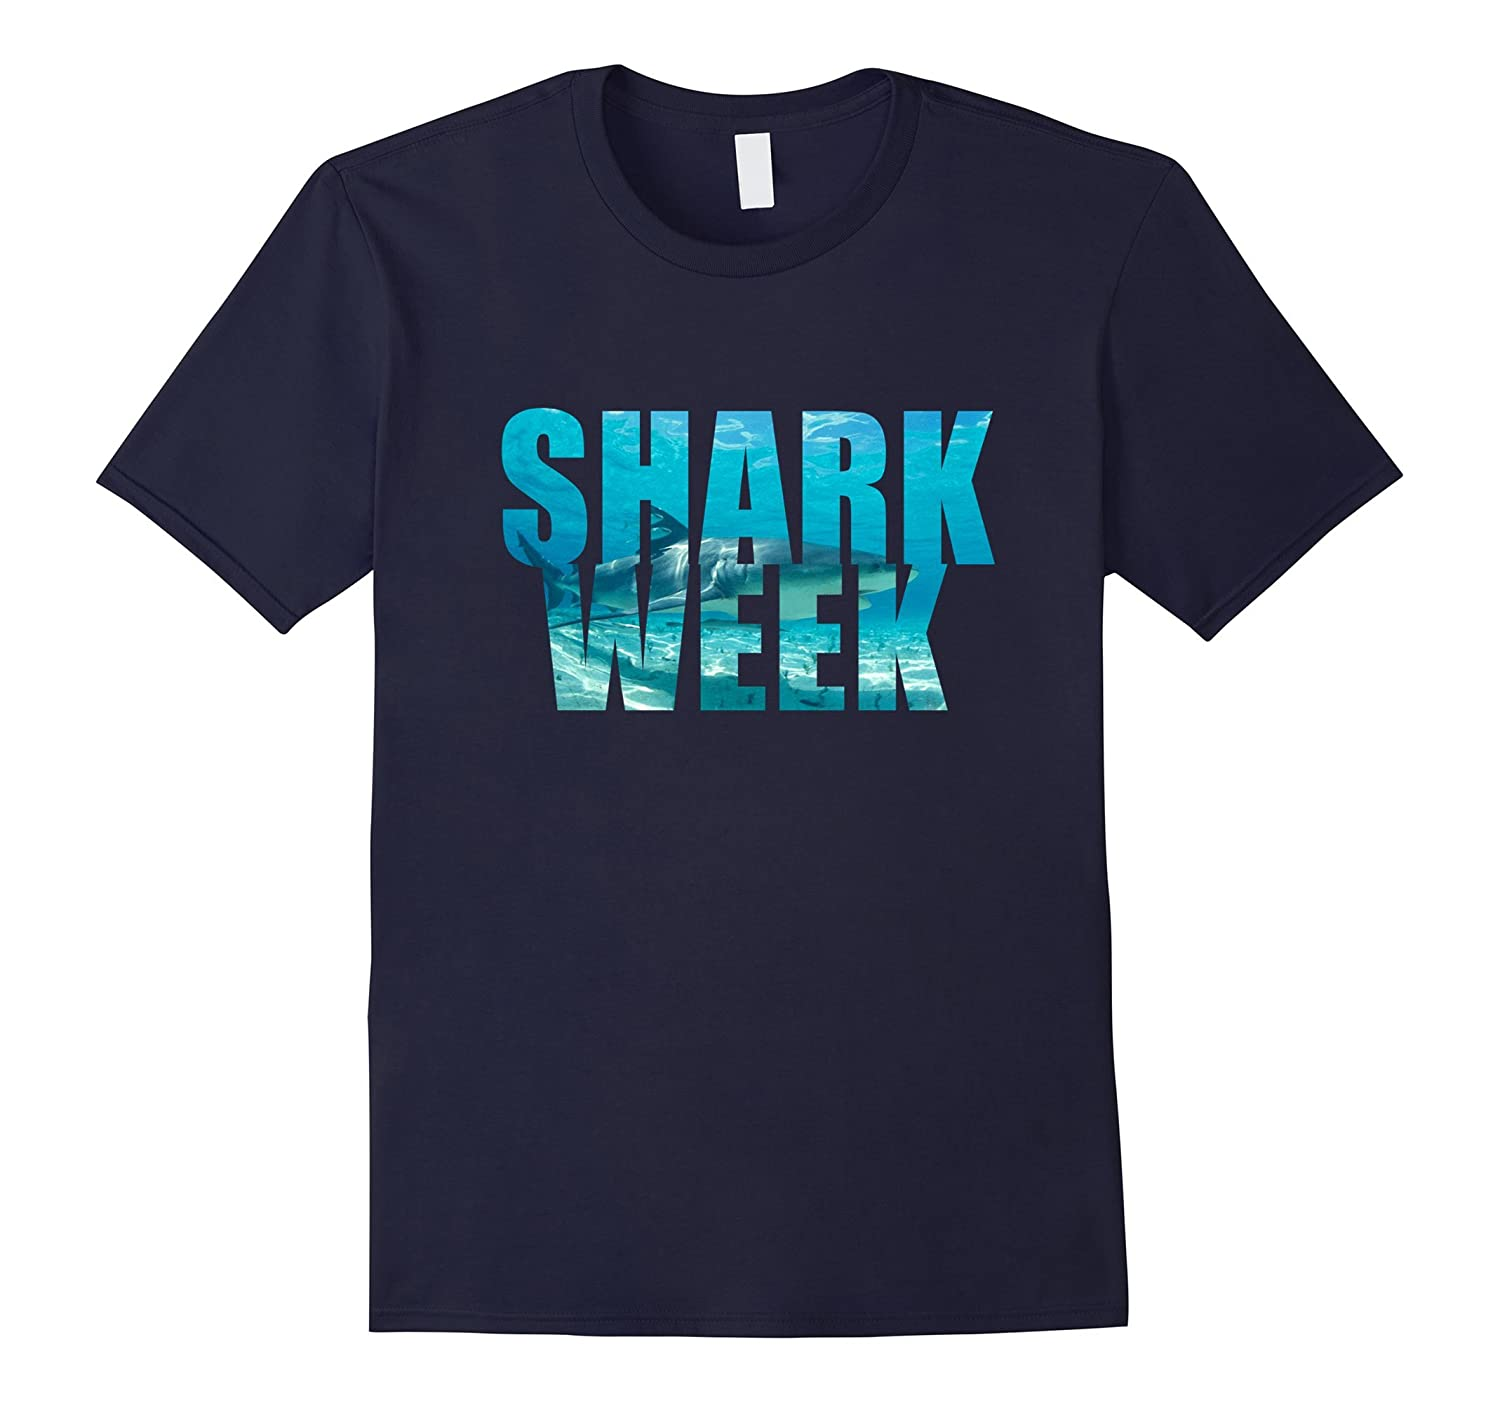 Week Of The Shark TShirt - Funny New 2017 Graphic T-Shirt-BN